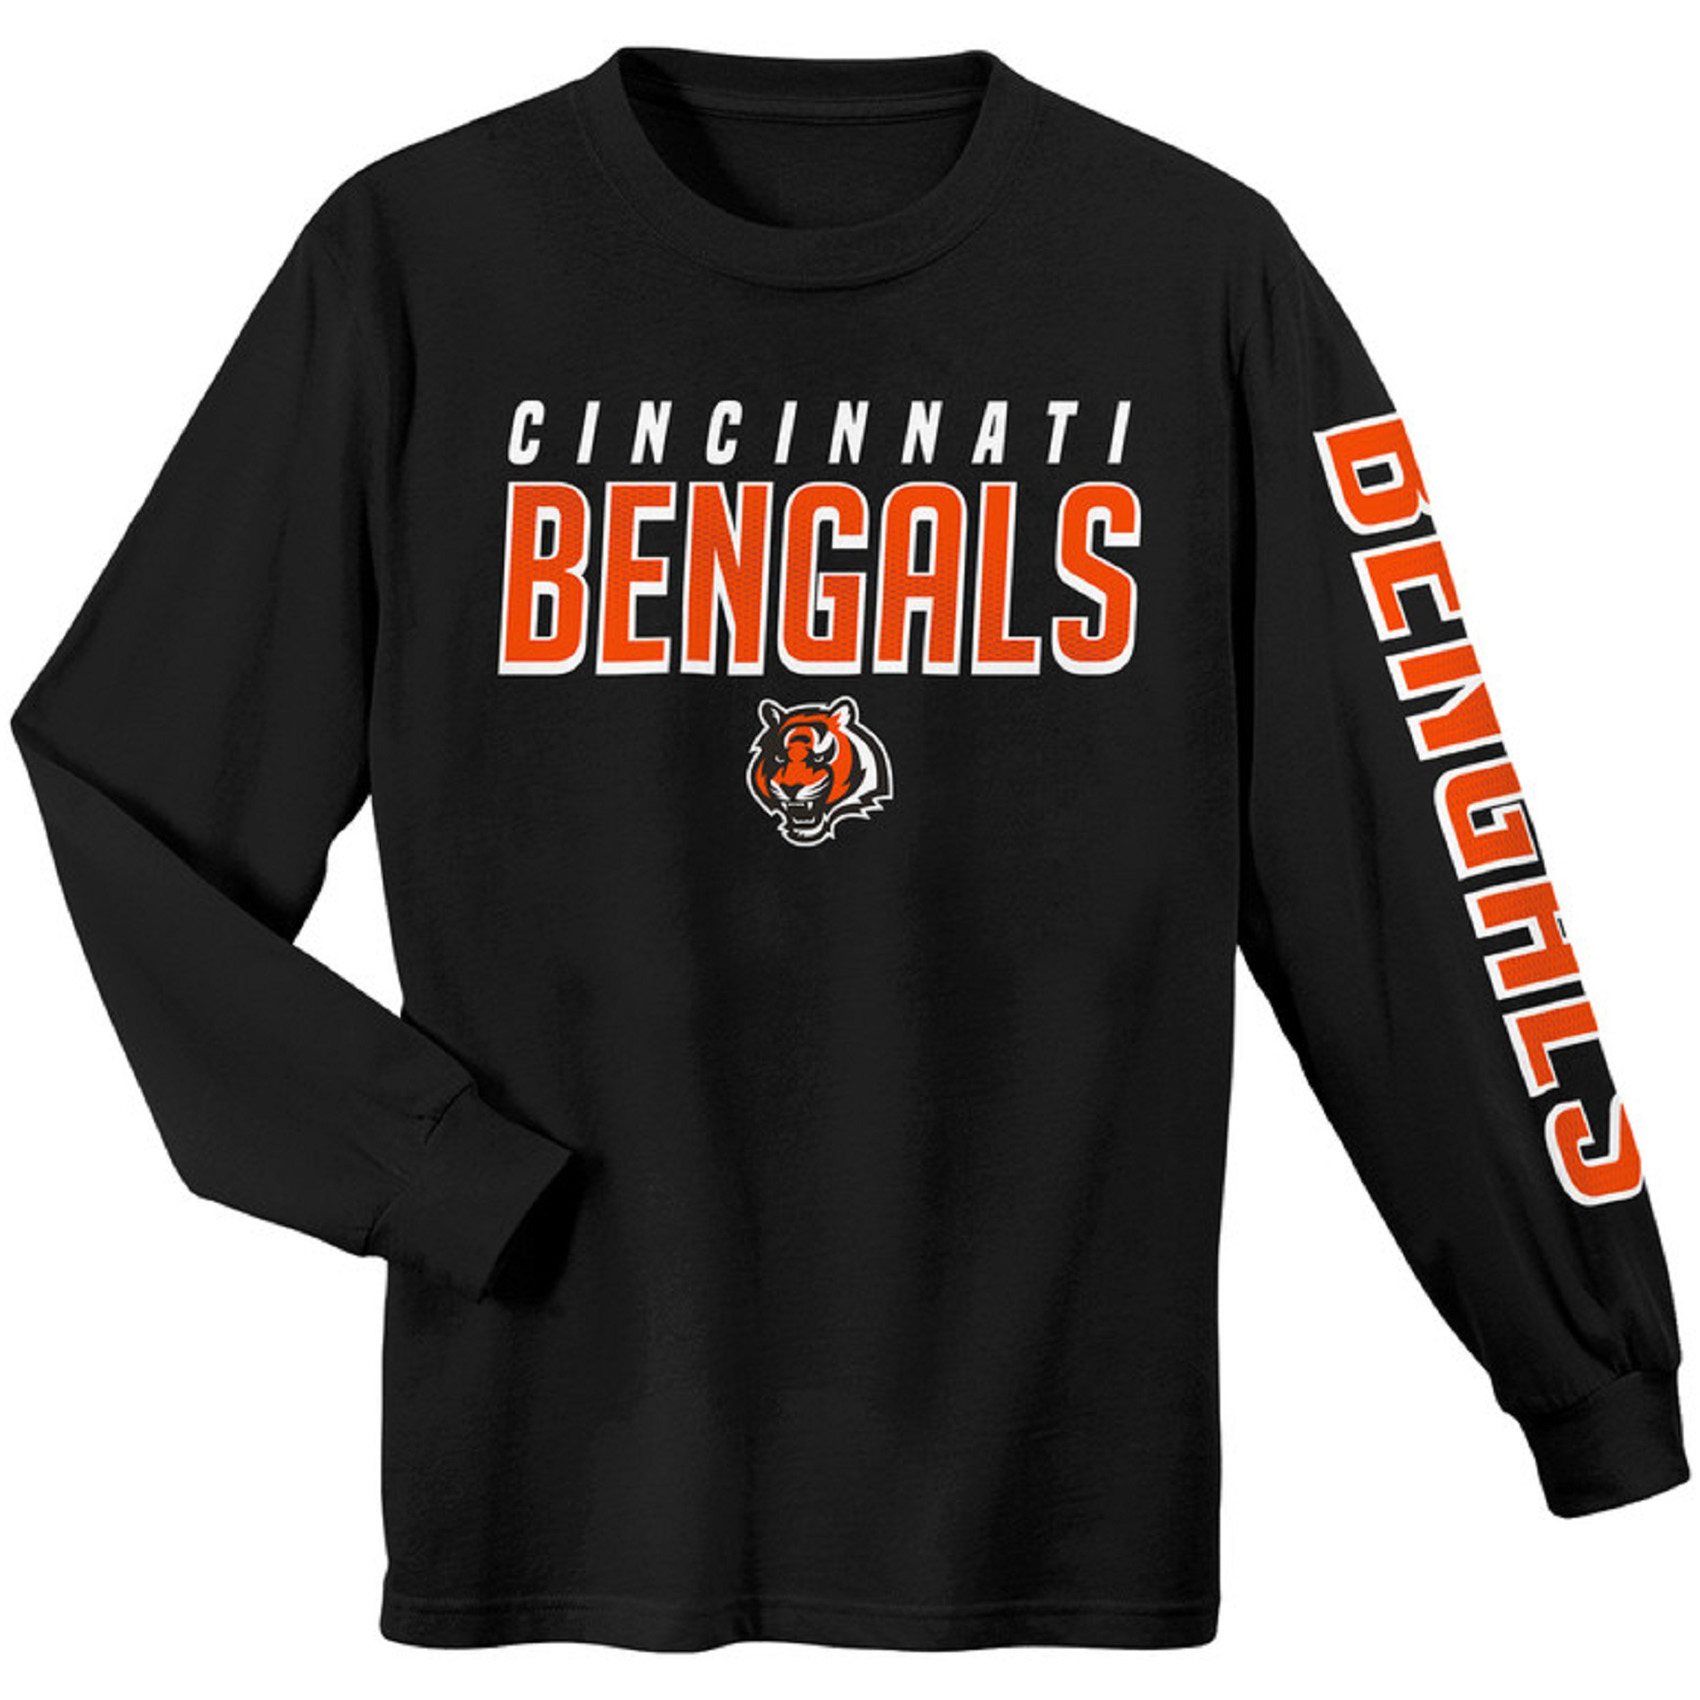 Youth Black Cincinnati Bengals Sleeve Hit Long Sleeve T-Shirt